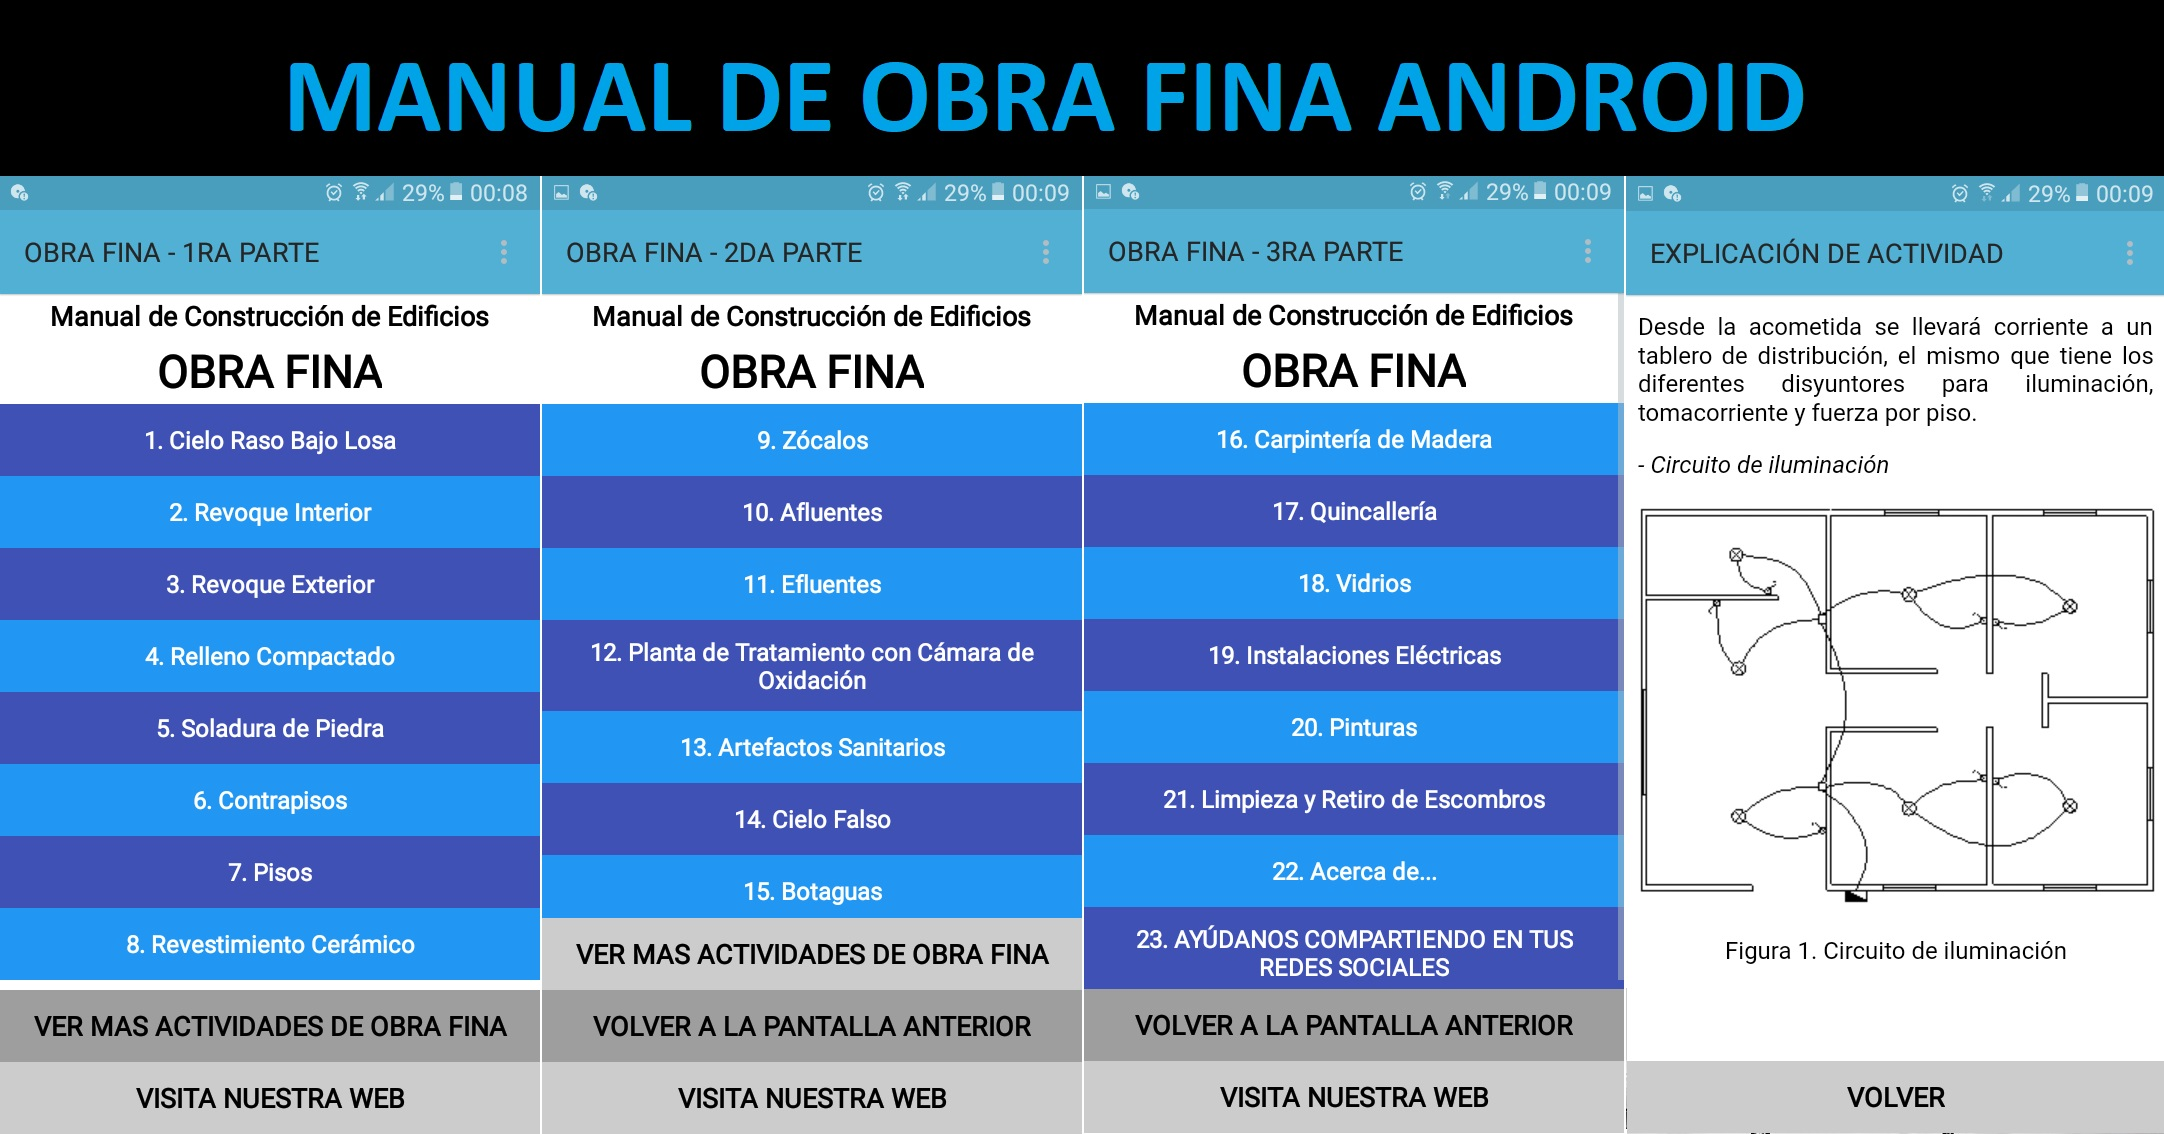 Manual de Obra Fina Android